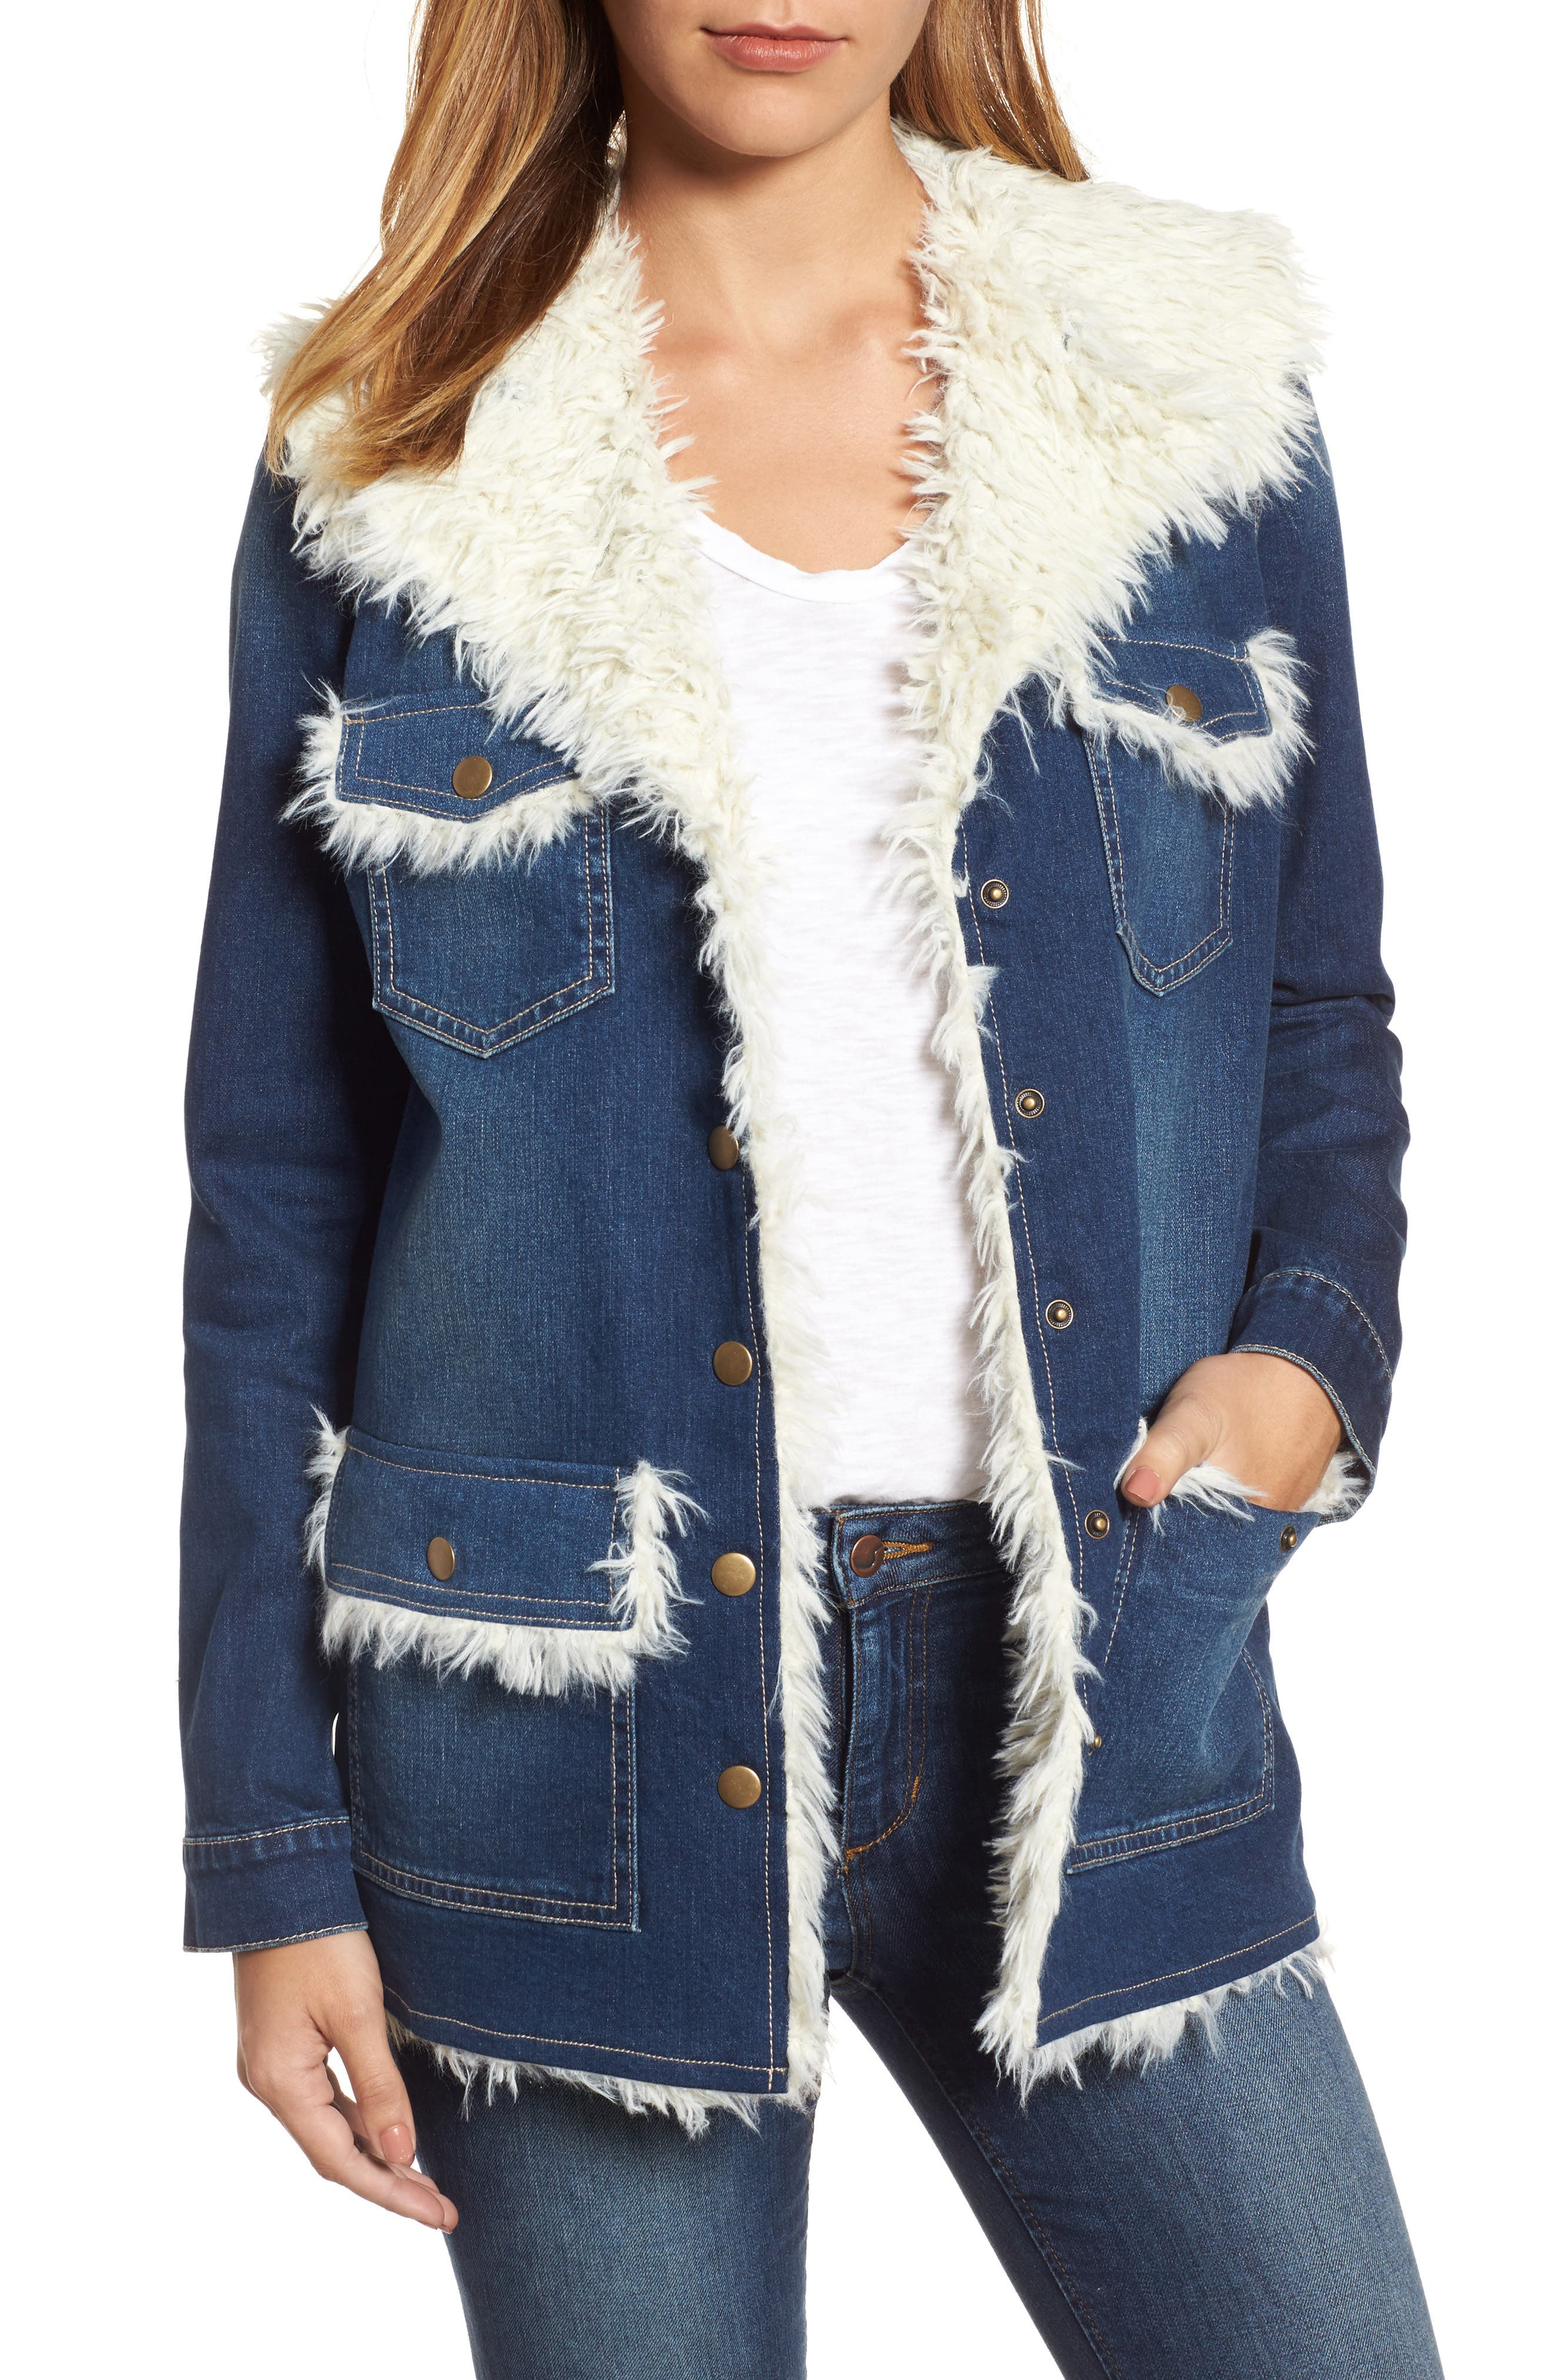 Main Image - KUT from the Kloth Faux Shearling Trim Denim Jacket